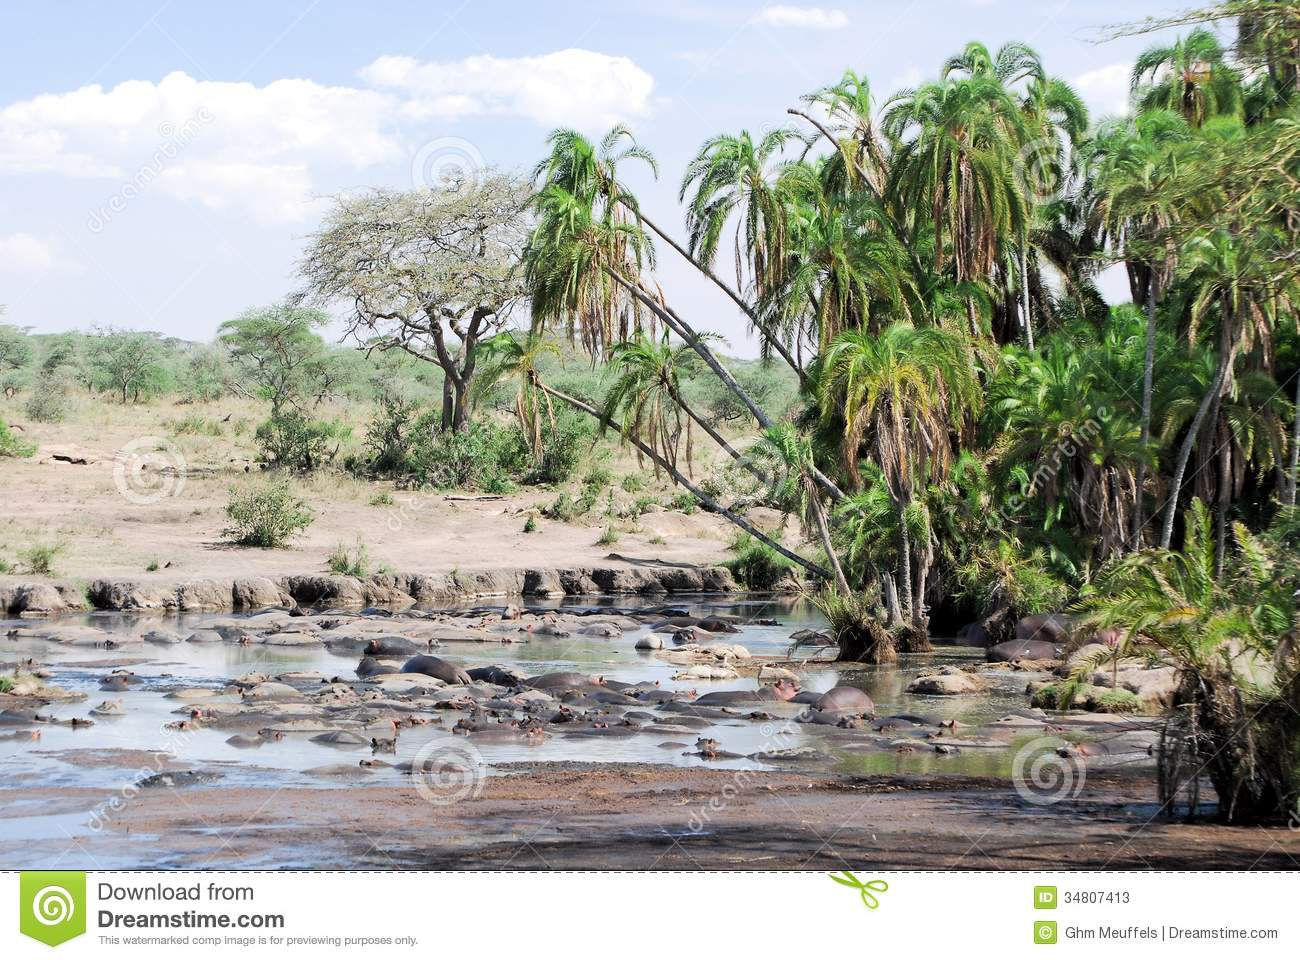 Pond and palms in Serengeti with hippos